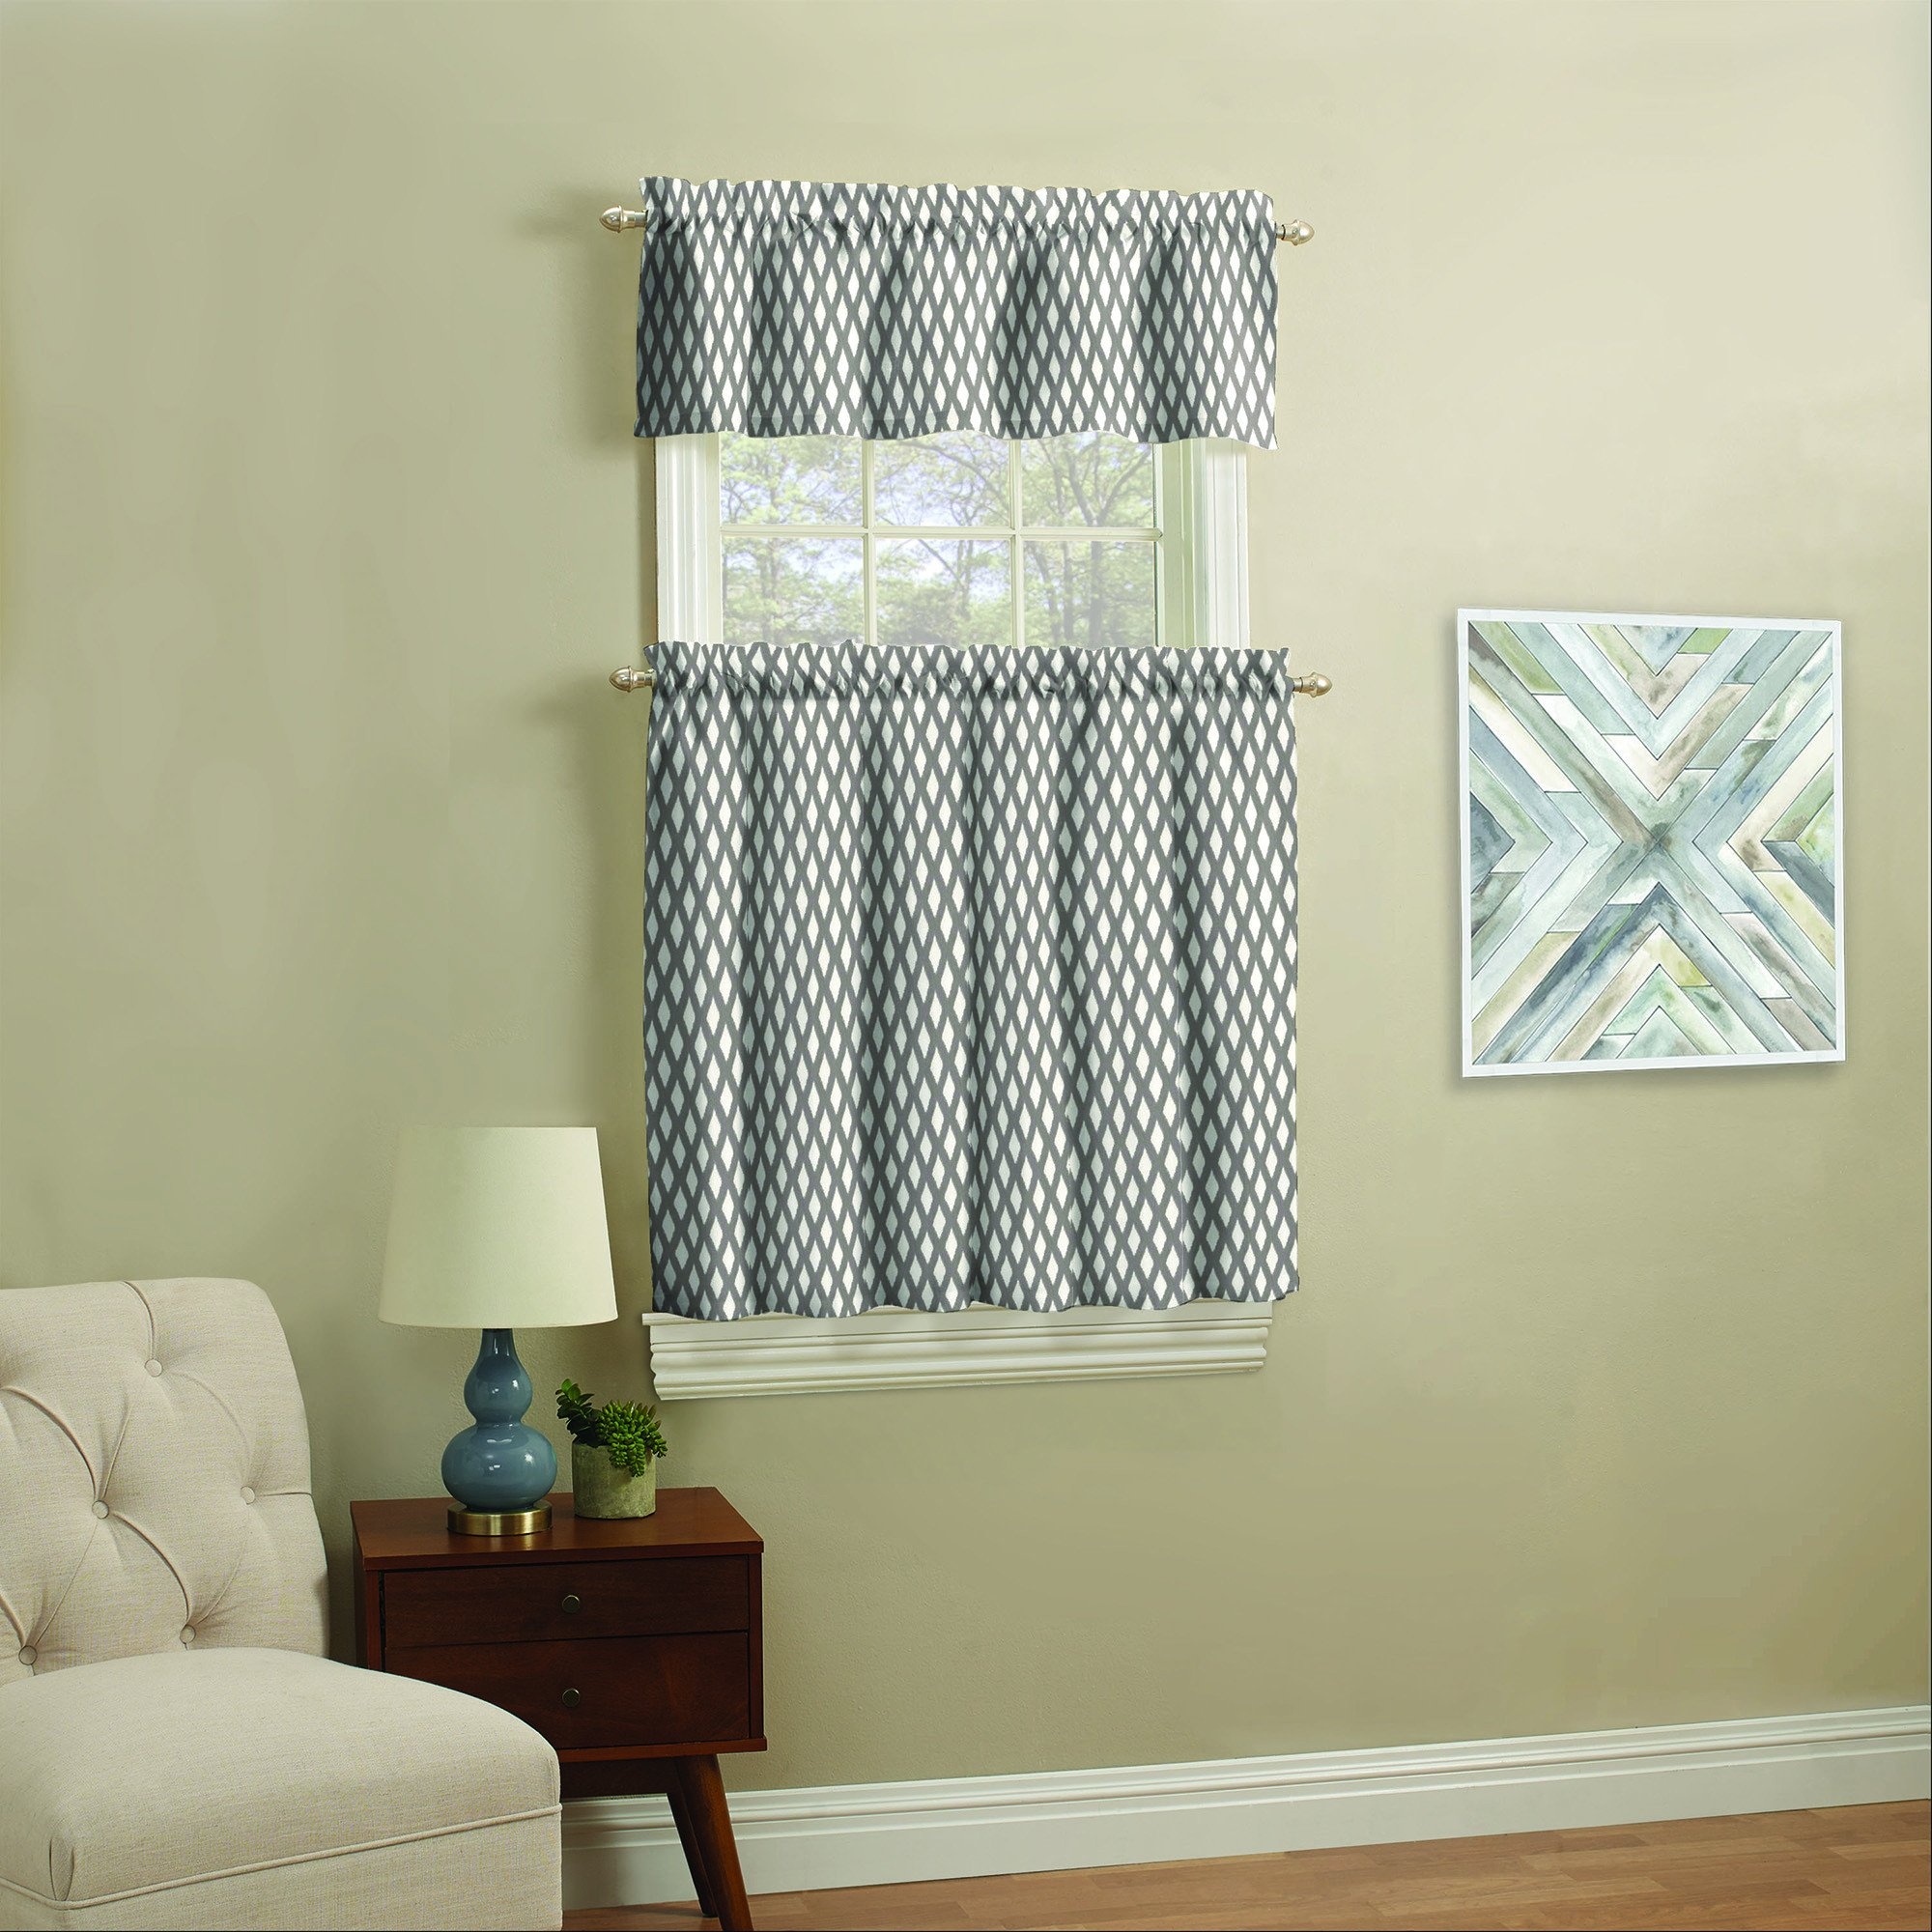 Bedroom Curtain Ideas Small Windows Luxury Mainstays Small Window Curtain Set Navy Ikat 3 Piece